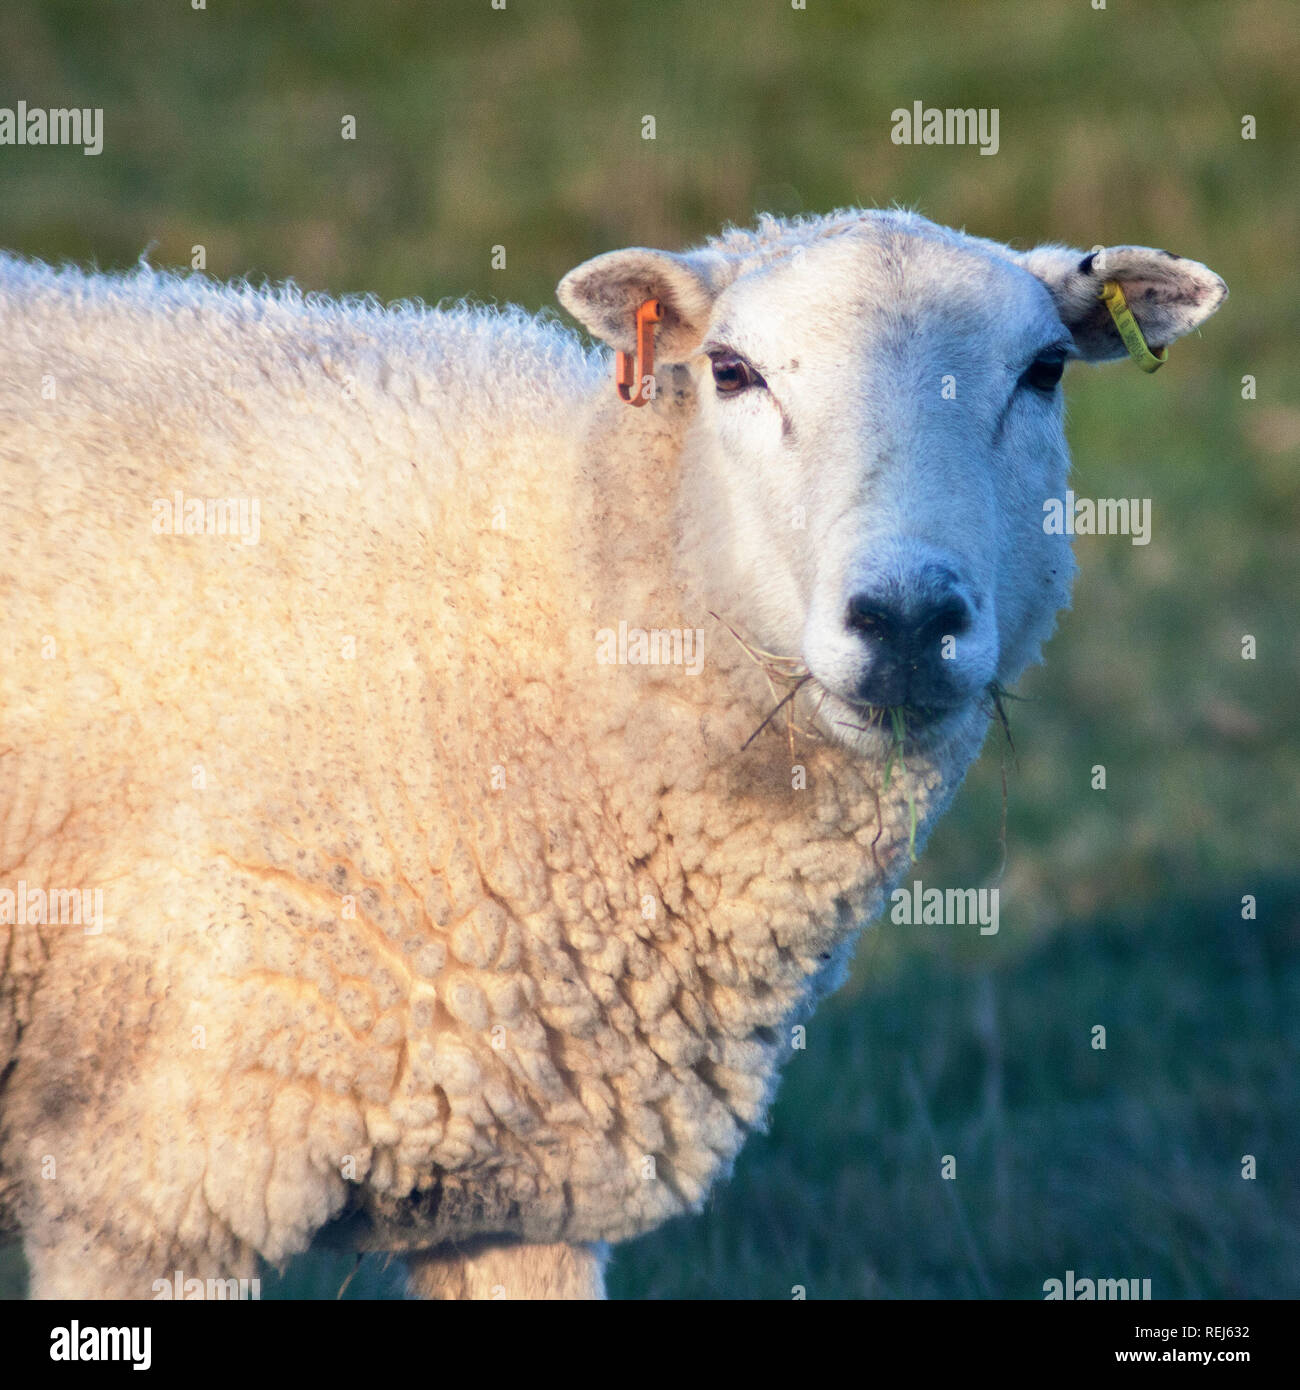 sheep ewe with ears tagged chewing grass looking at camera Stock Photo